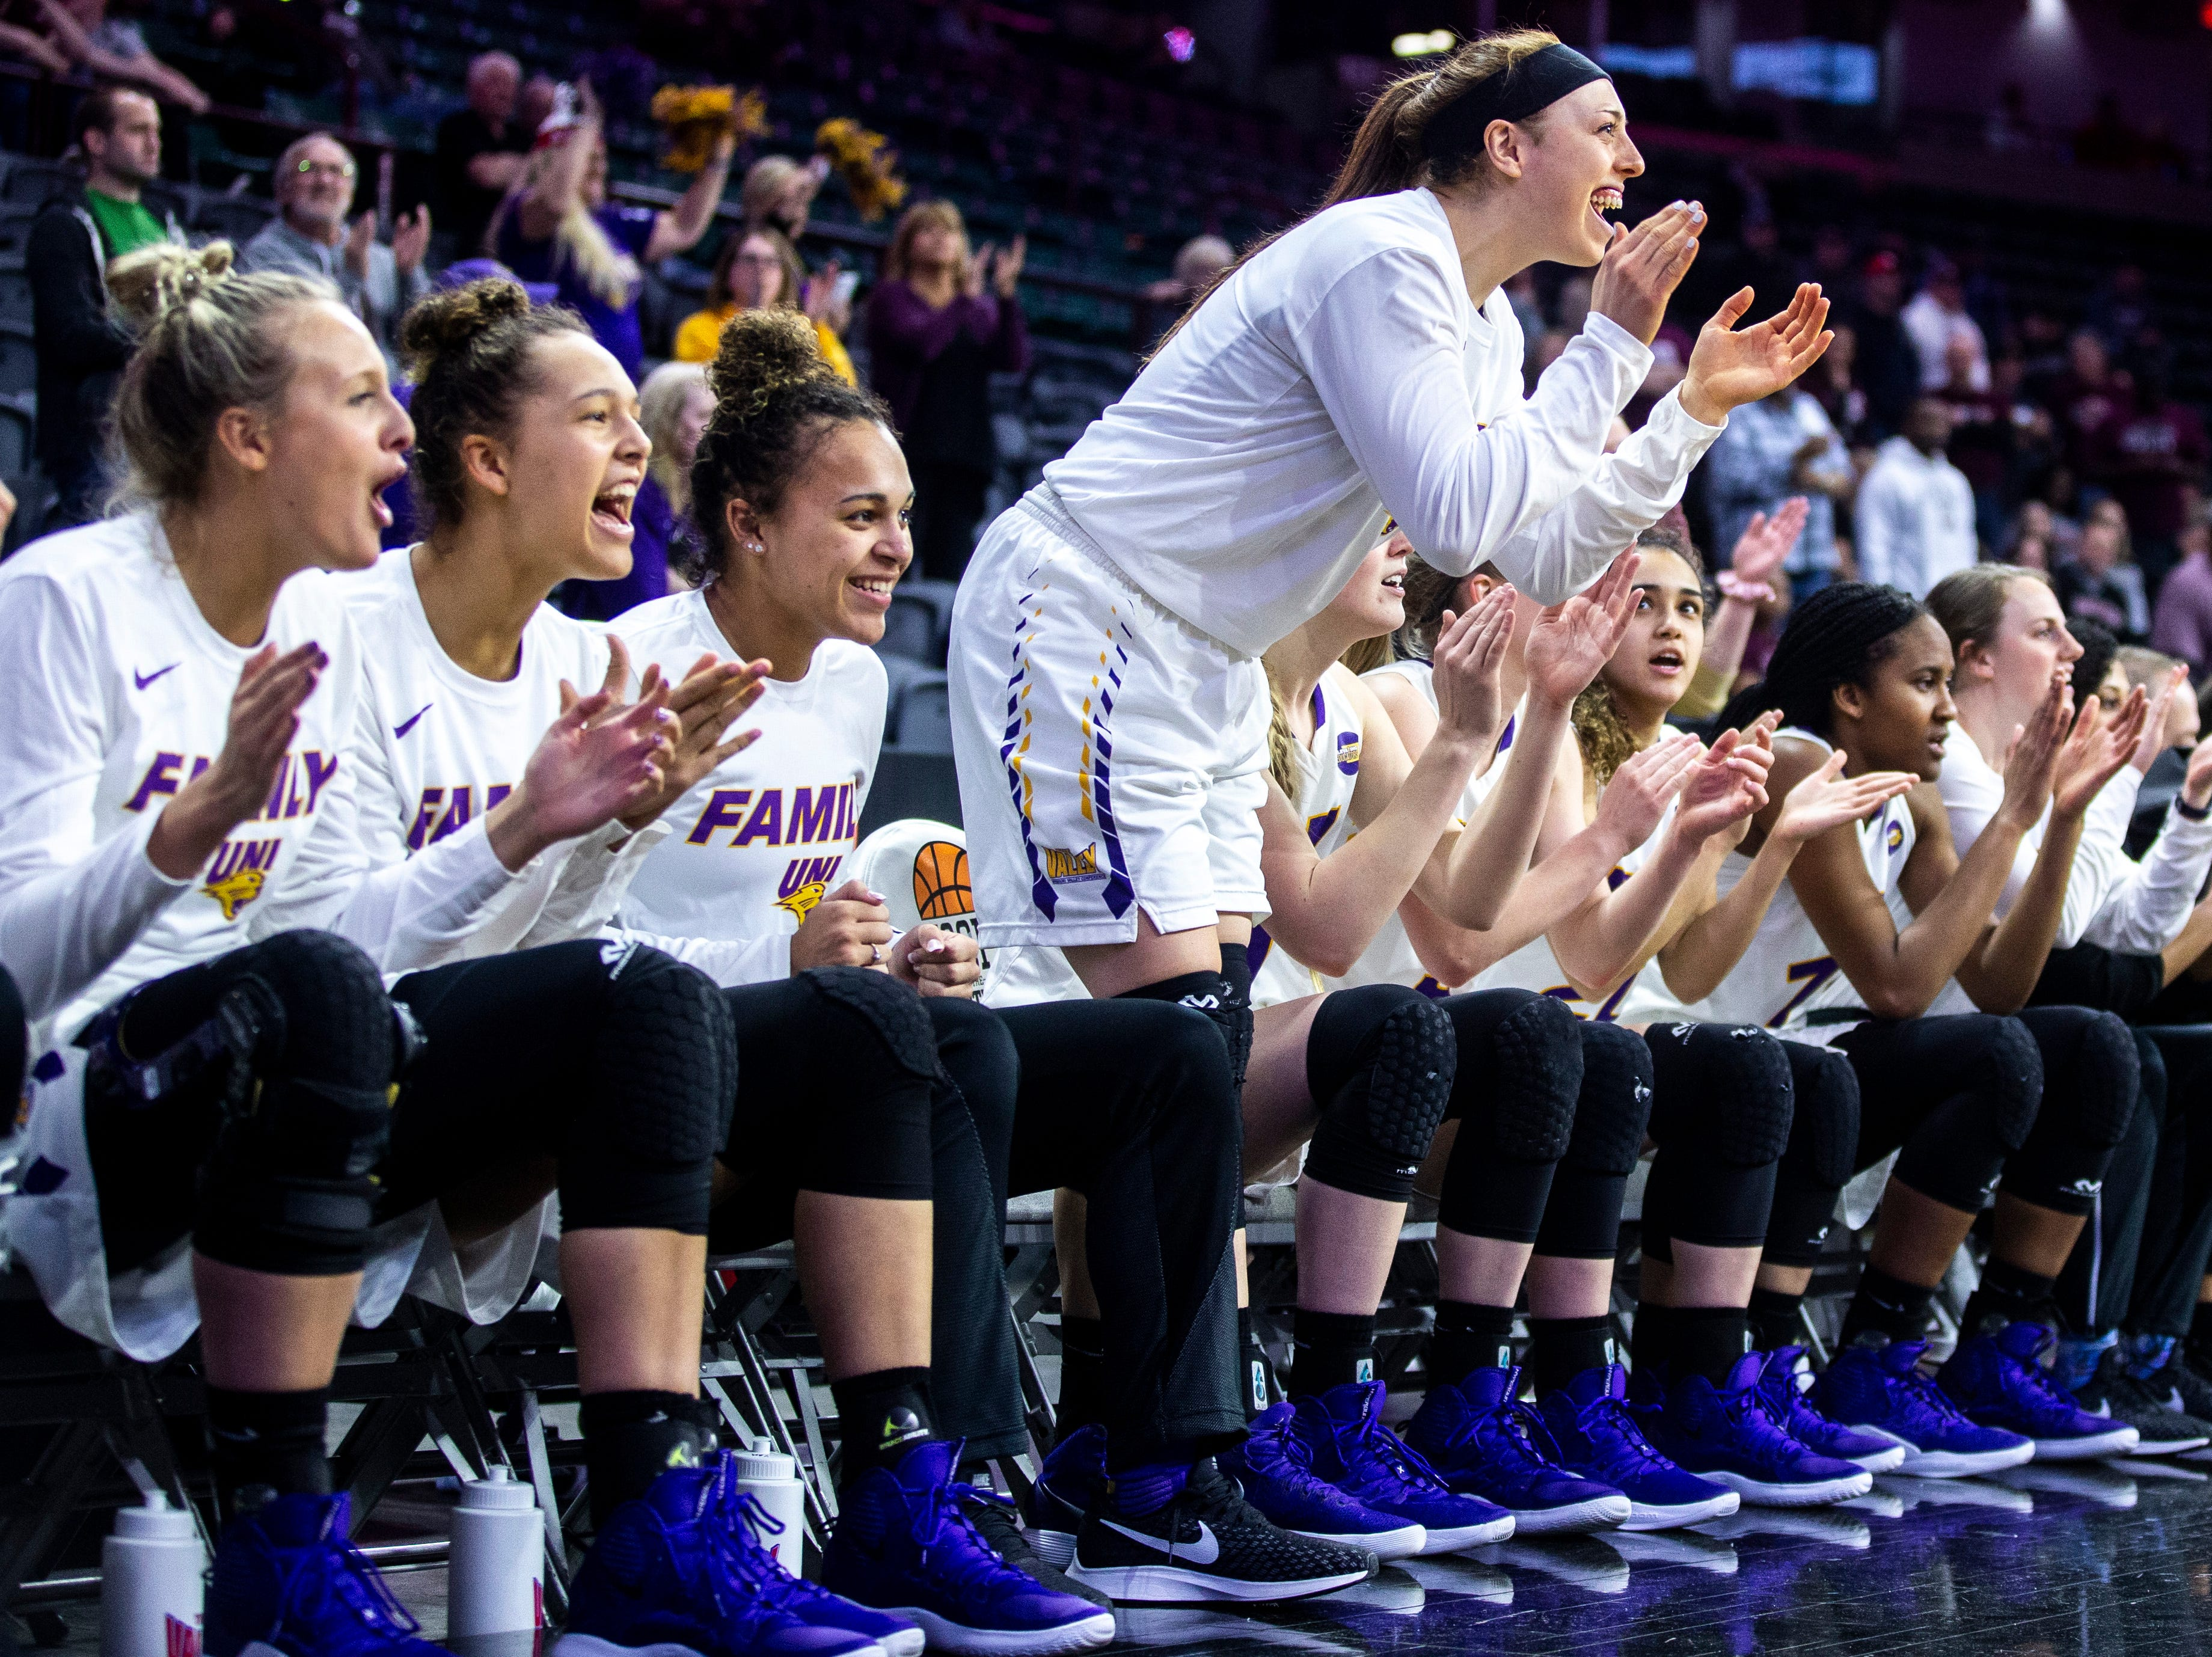 Northern Iowa Panthers cheer on the bench during a NCAA Missouri Valley Conference women's basketball quarterfinal tournament game, Friday, March 15, 2019, at the TaxSlayer Center in Moline, Illinois.